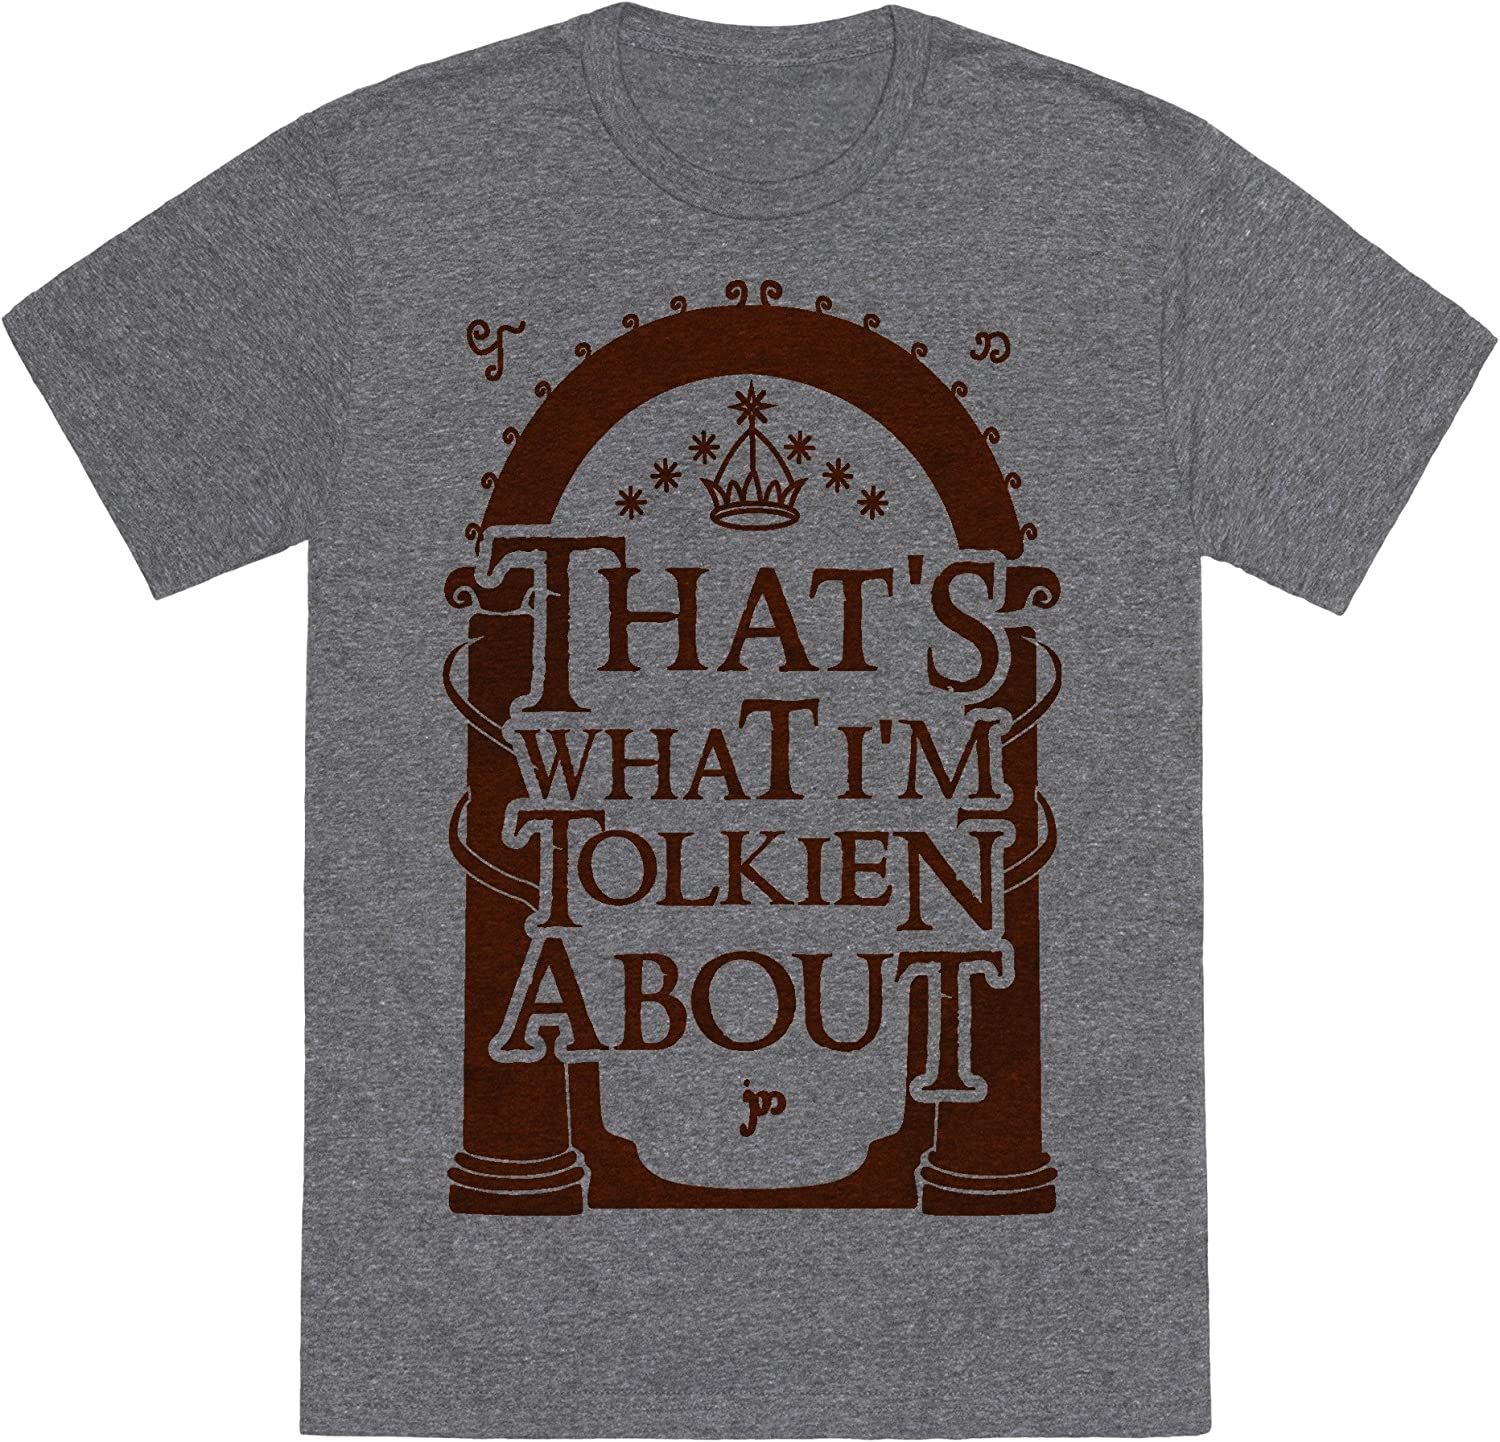 That/'s What I/'m Tolkien About LOTR Parody Unisex T-Shirt Lord Of The Rings